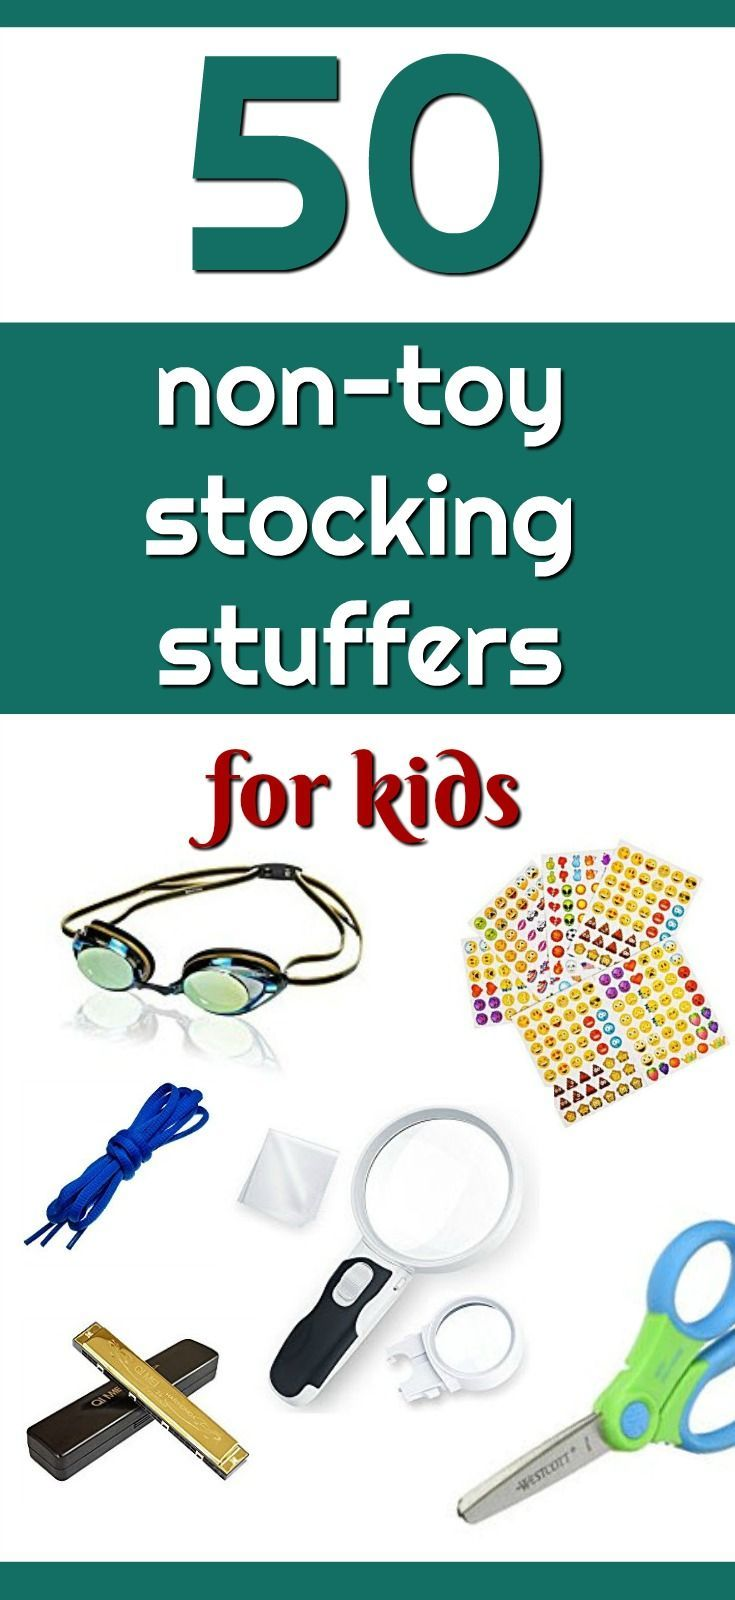 Non-toy stocking stuffers for kids to avoid clutter and attempt to be a minimalist this Christmas!   Stocking Filler Ideas for Kids   Santa Tips   Christmas Present Hacks   How to Fill a Stocking   What to Buy for Christmas   Christmas Traditions   Toy-Fr